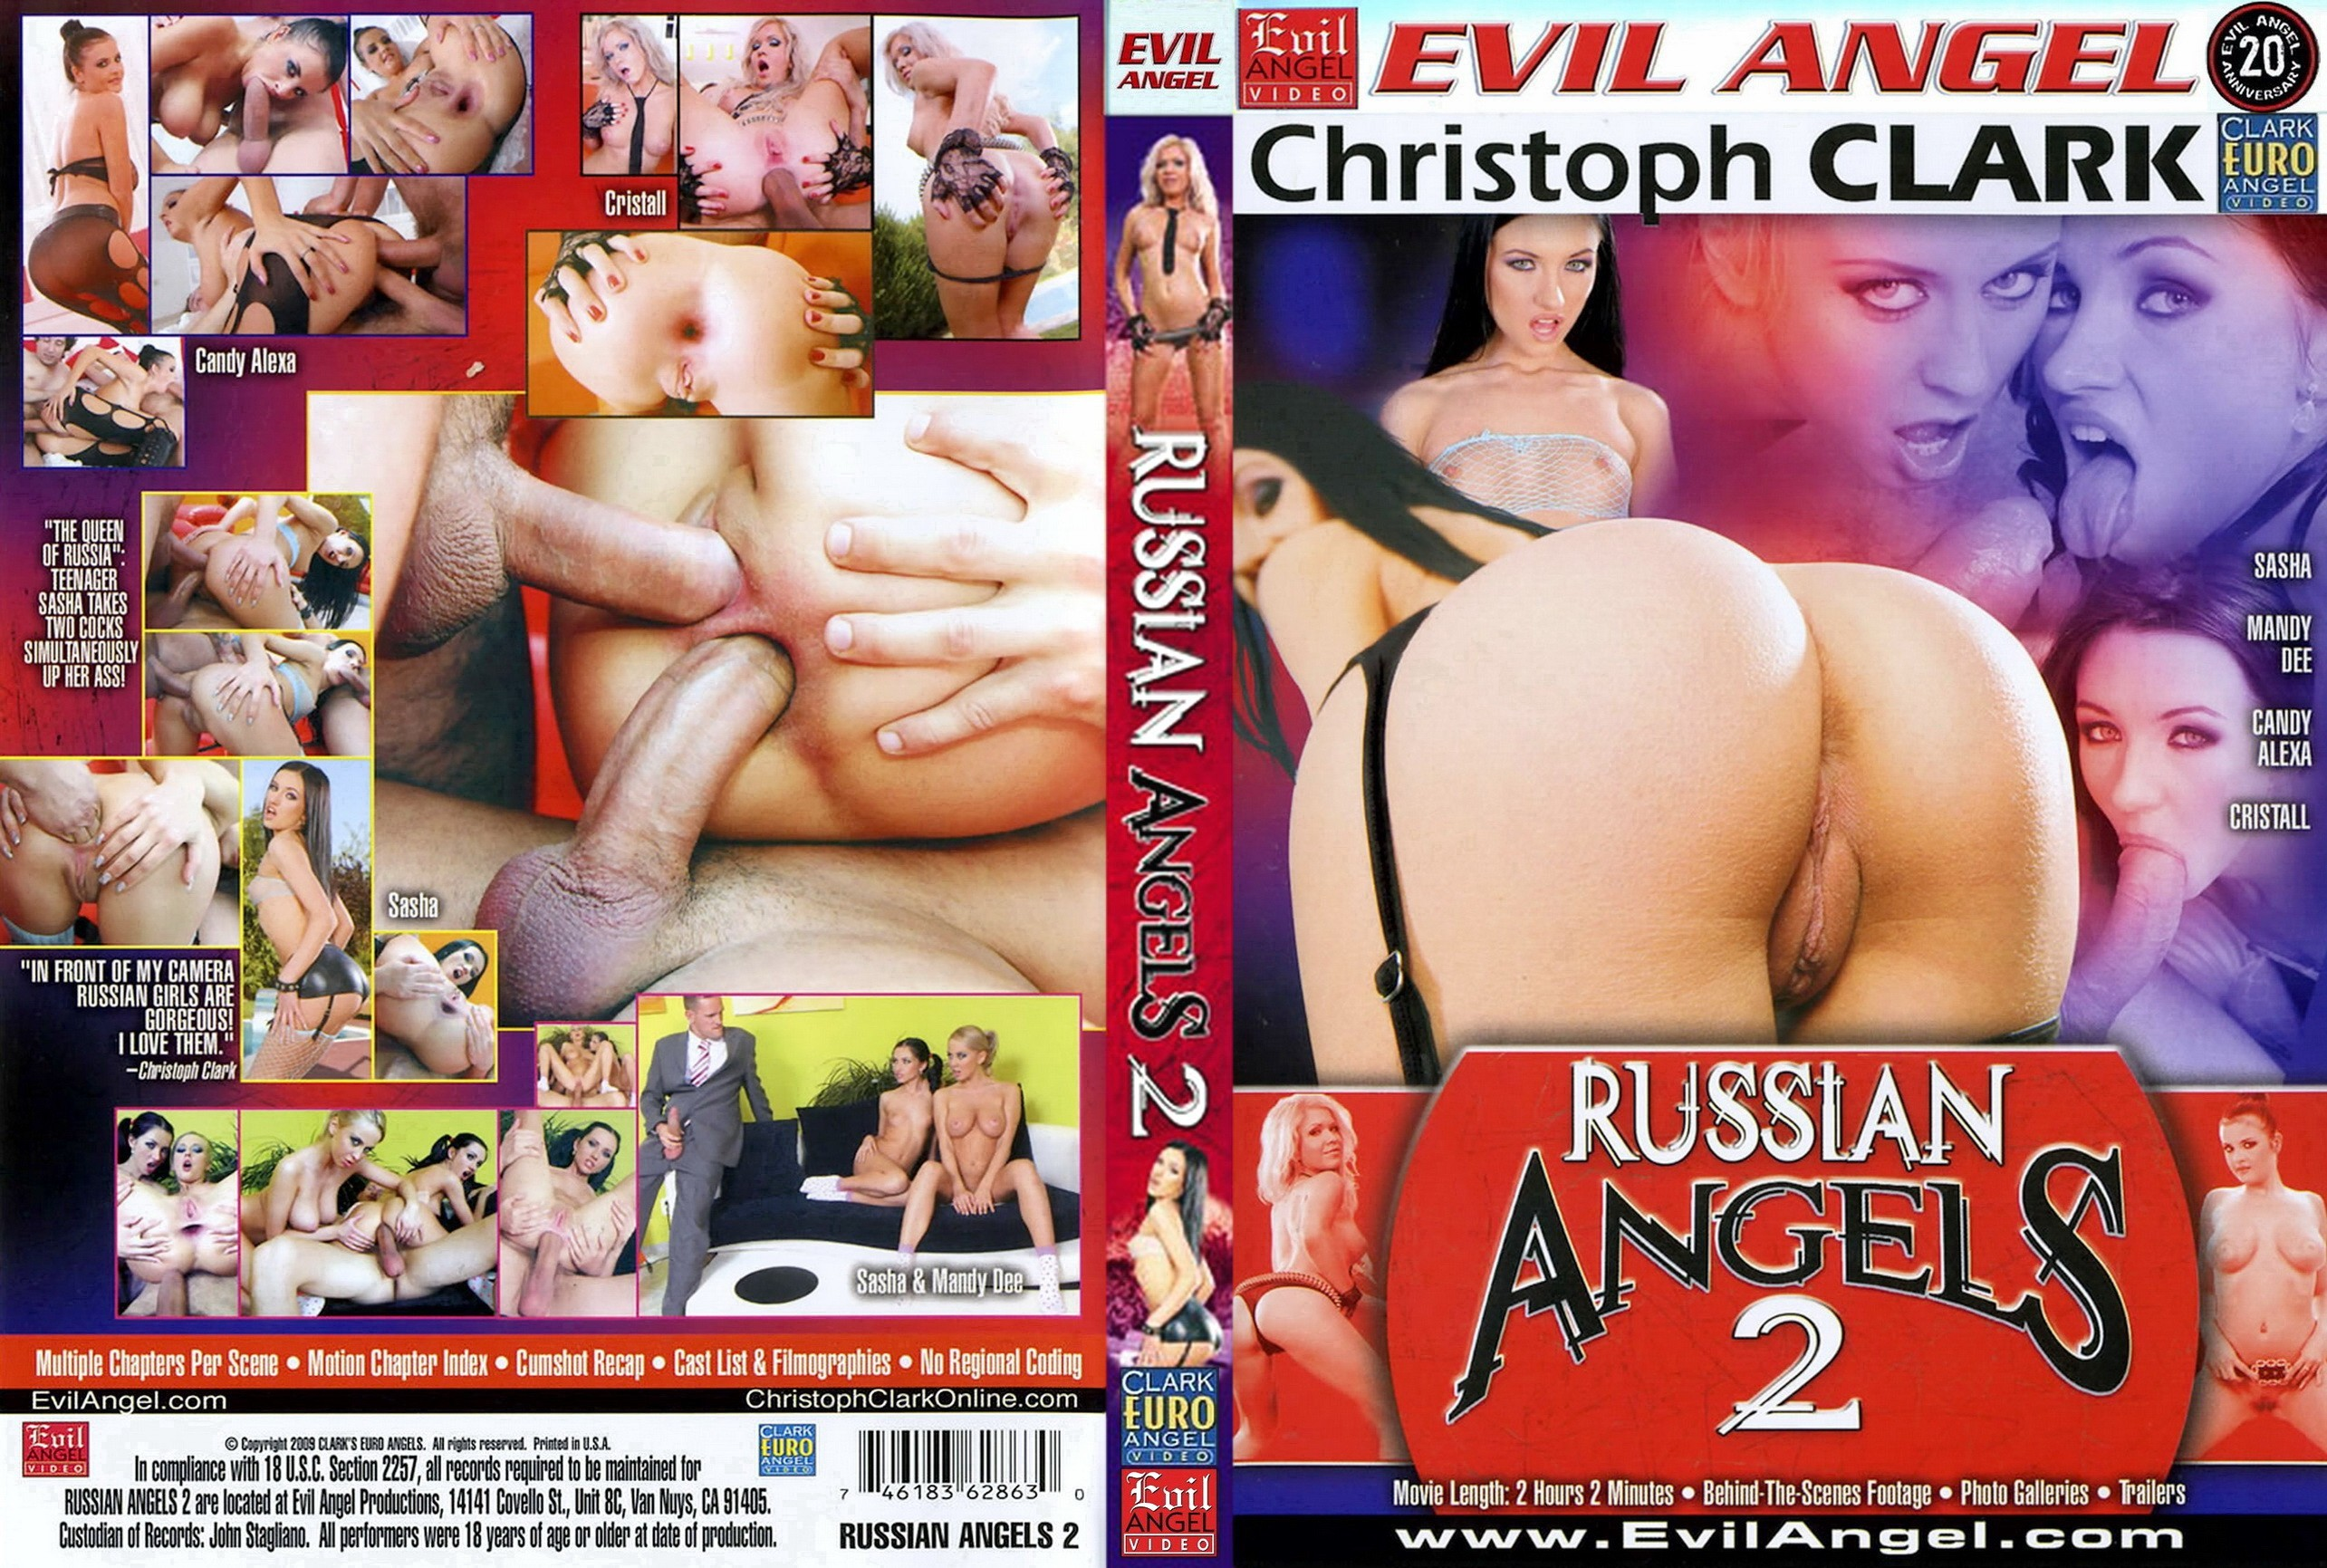 Cheap porno dvd #9